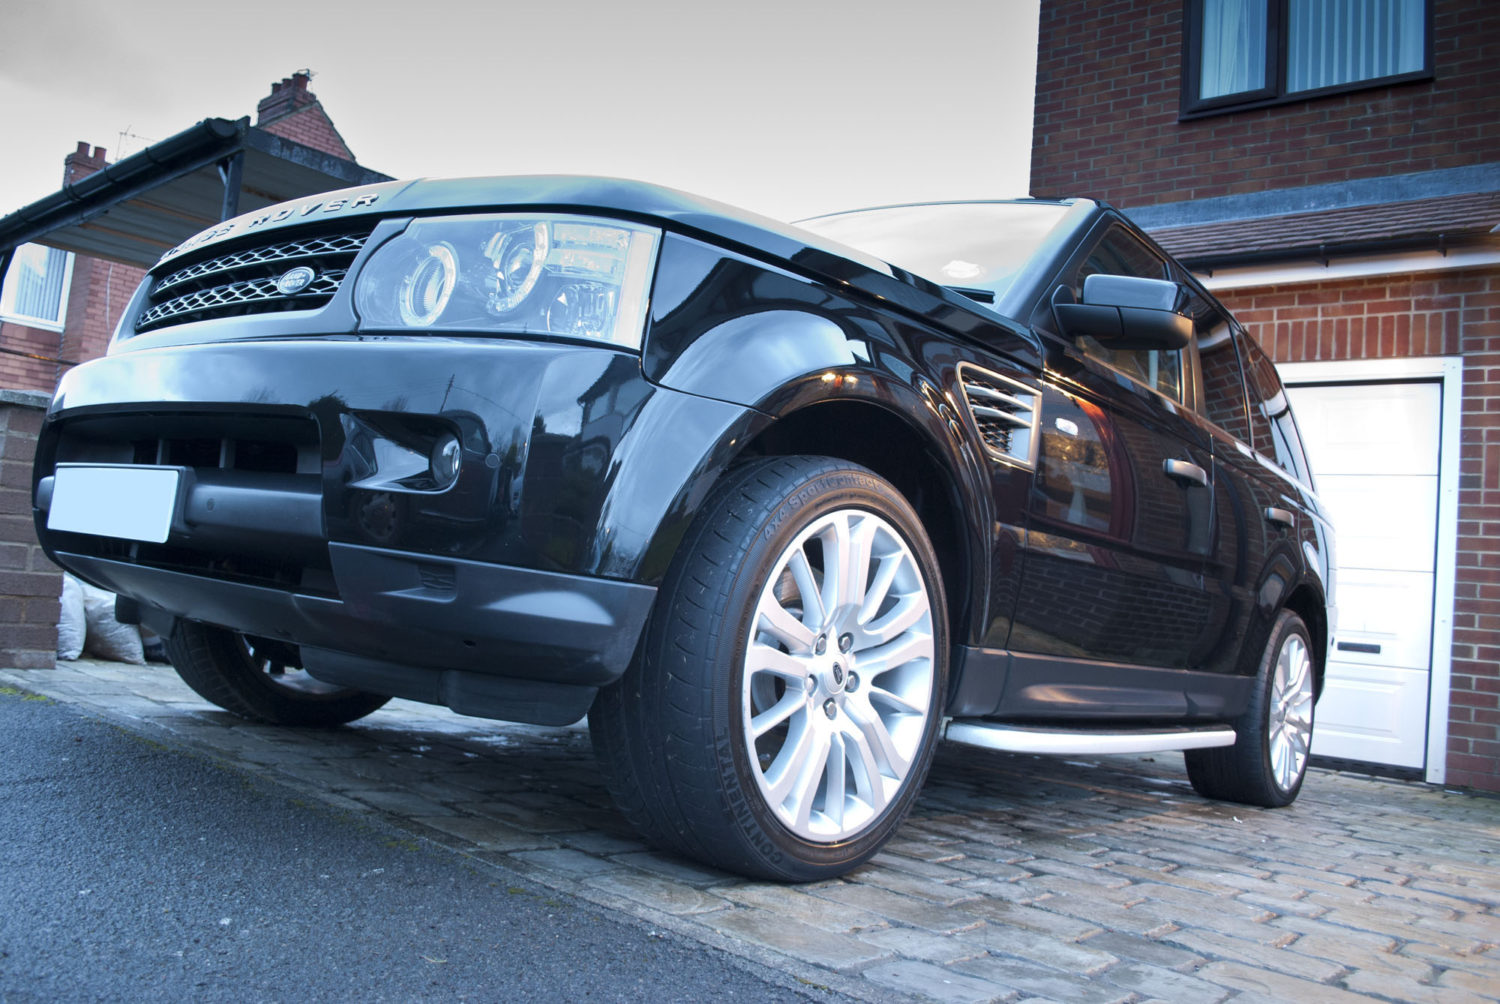 Range Rover Sport Detailed by DWR Detailing